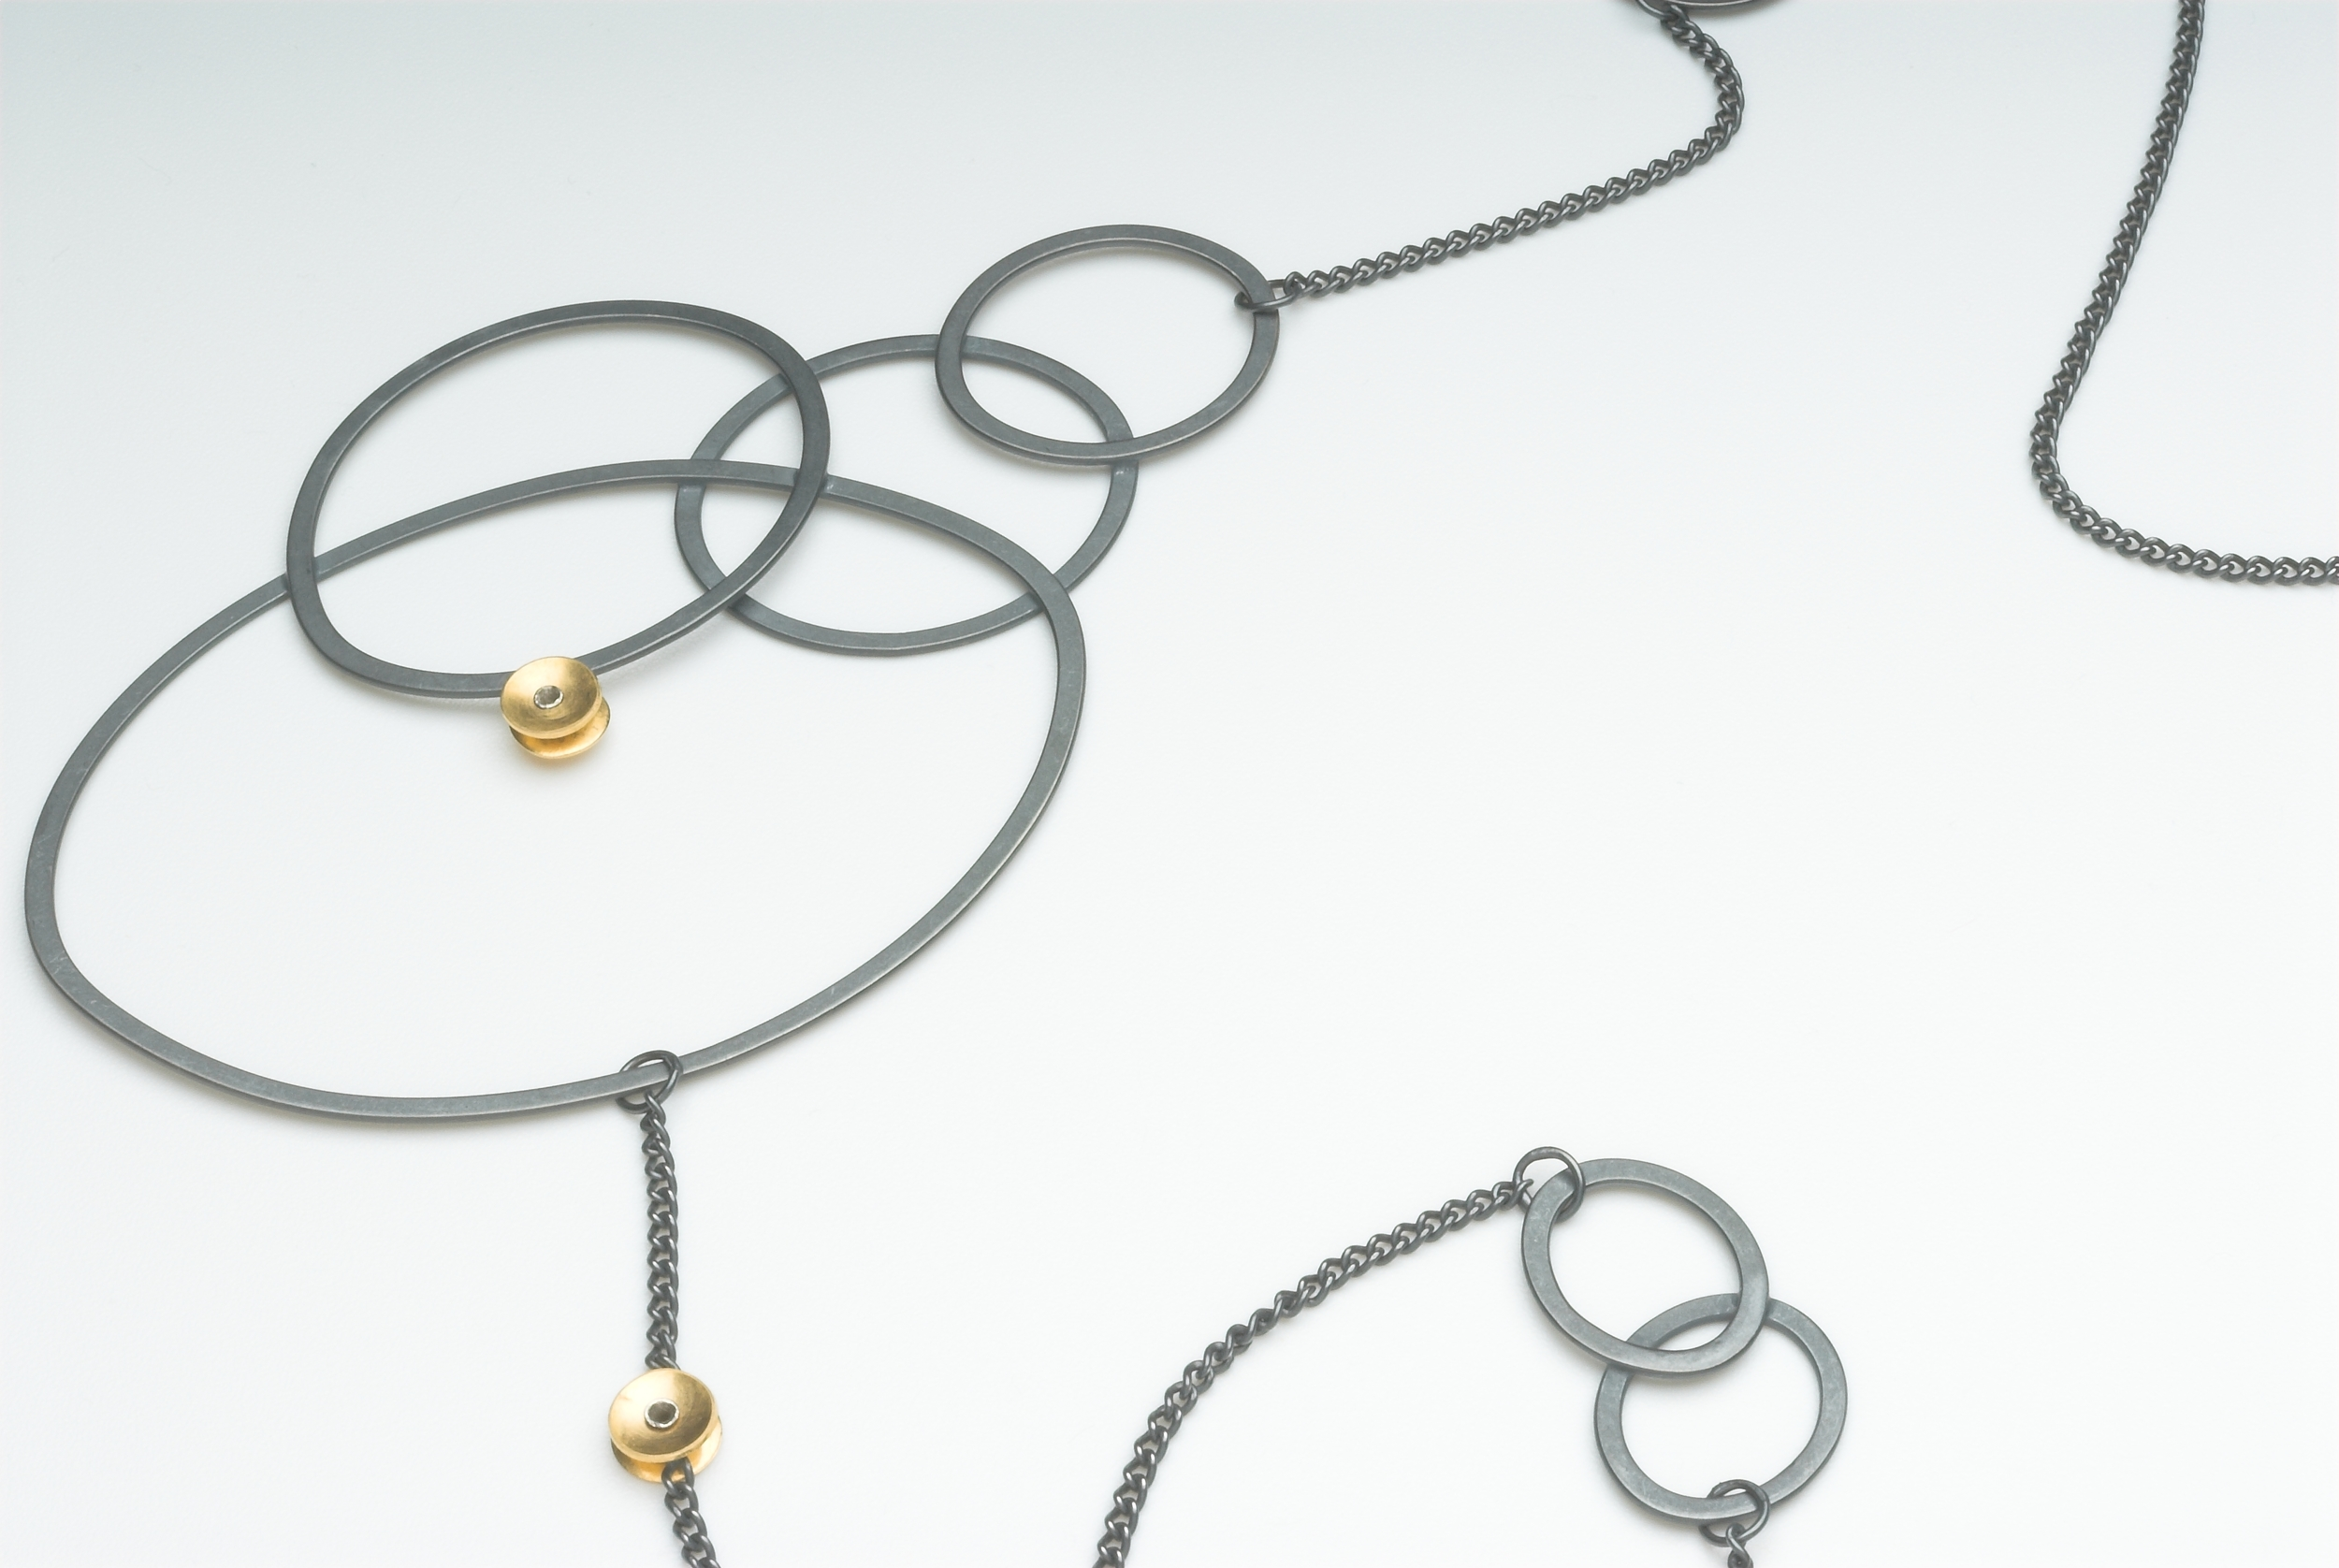 Oxidised silver and gold plate necklace